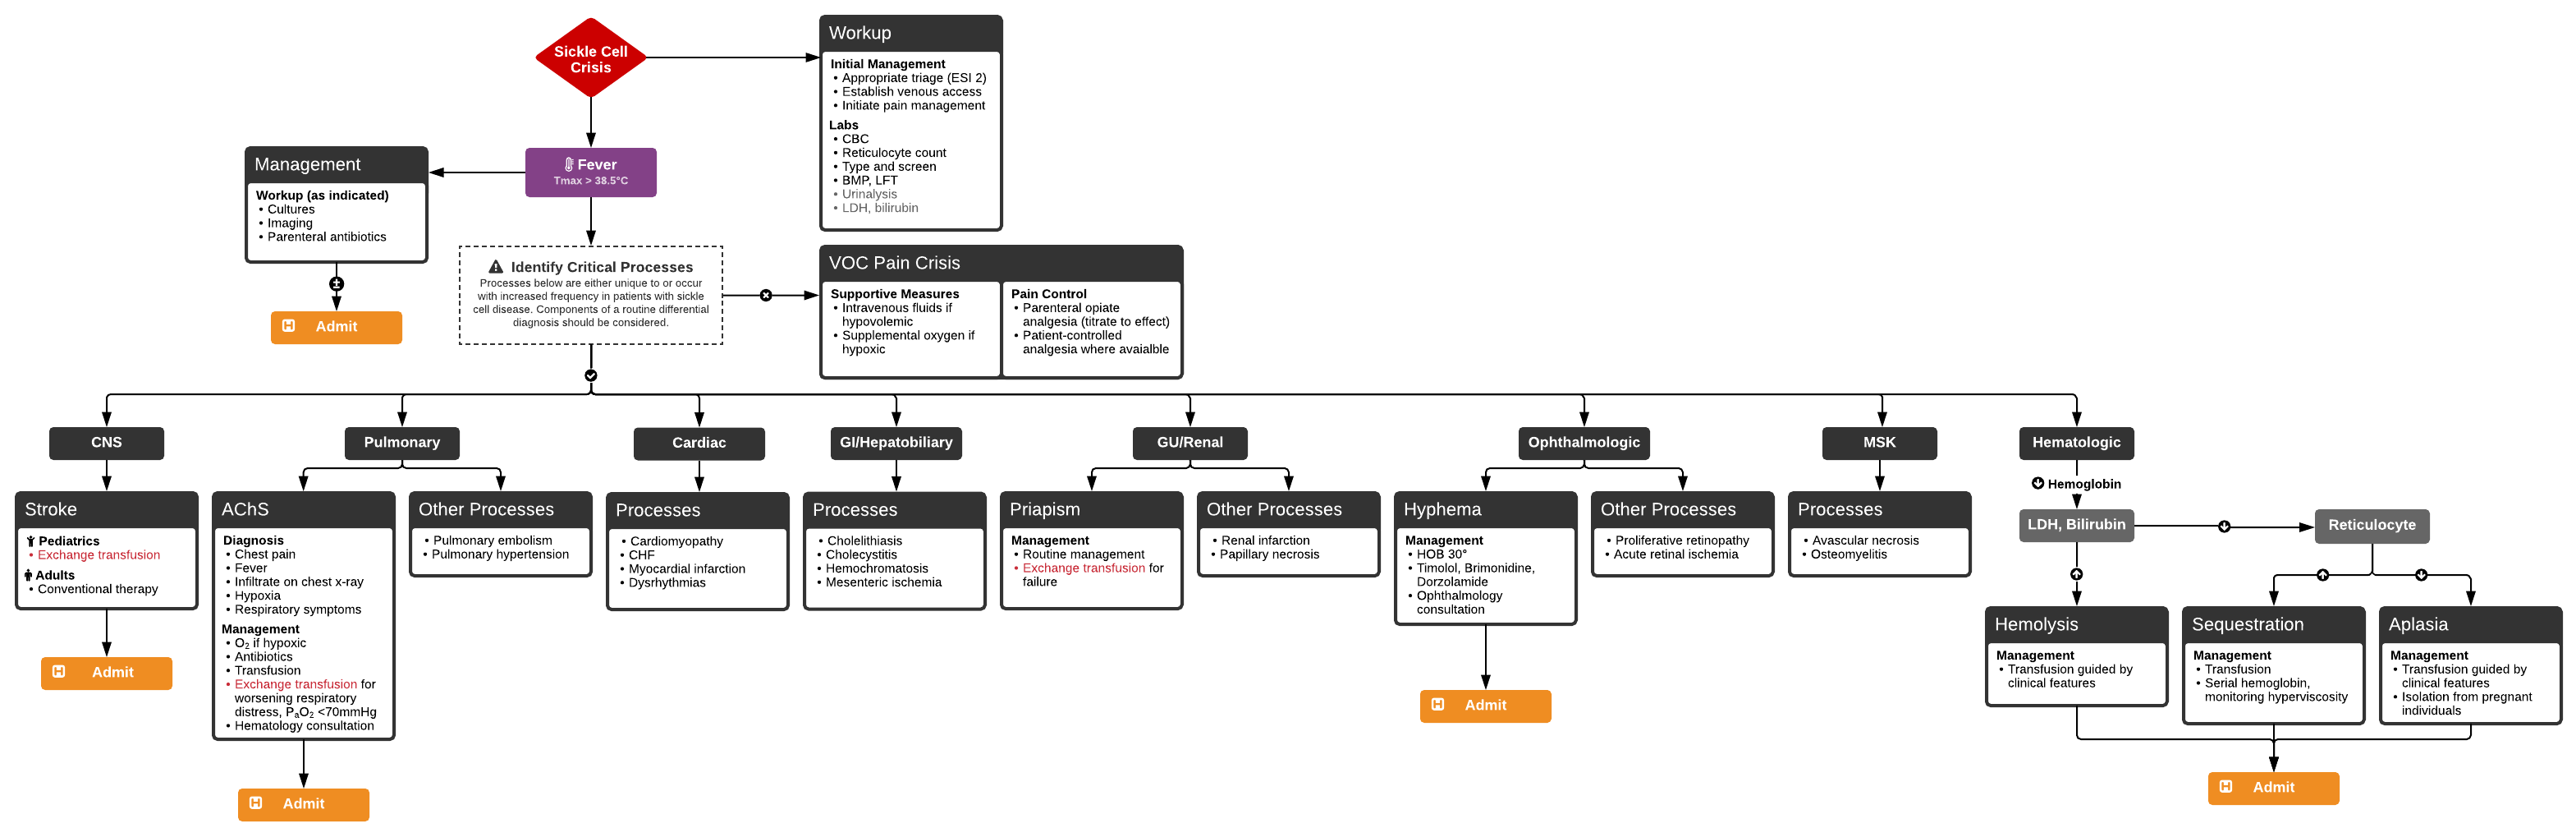 Algorithm for the Management of Sickle Cell Crises